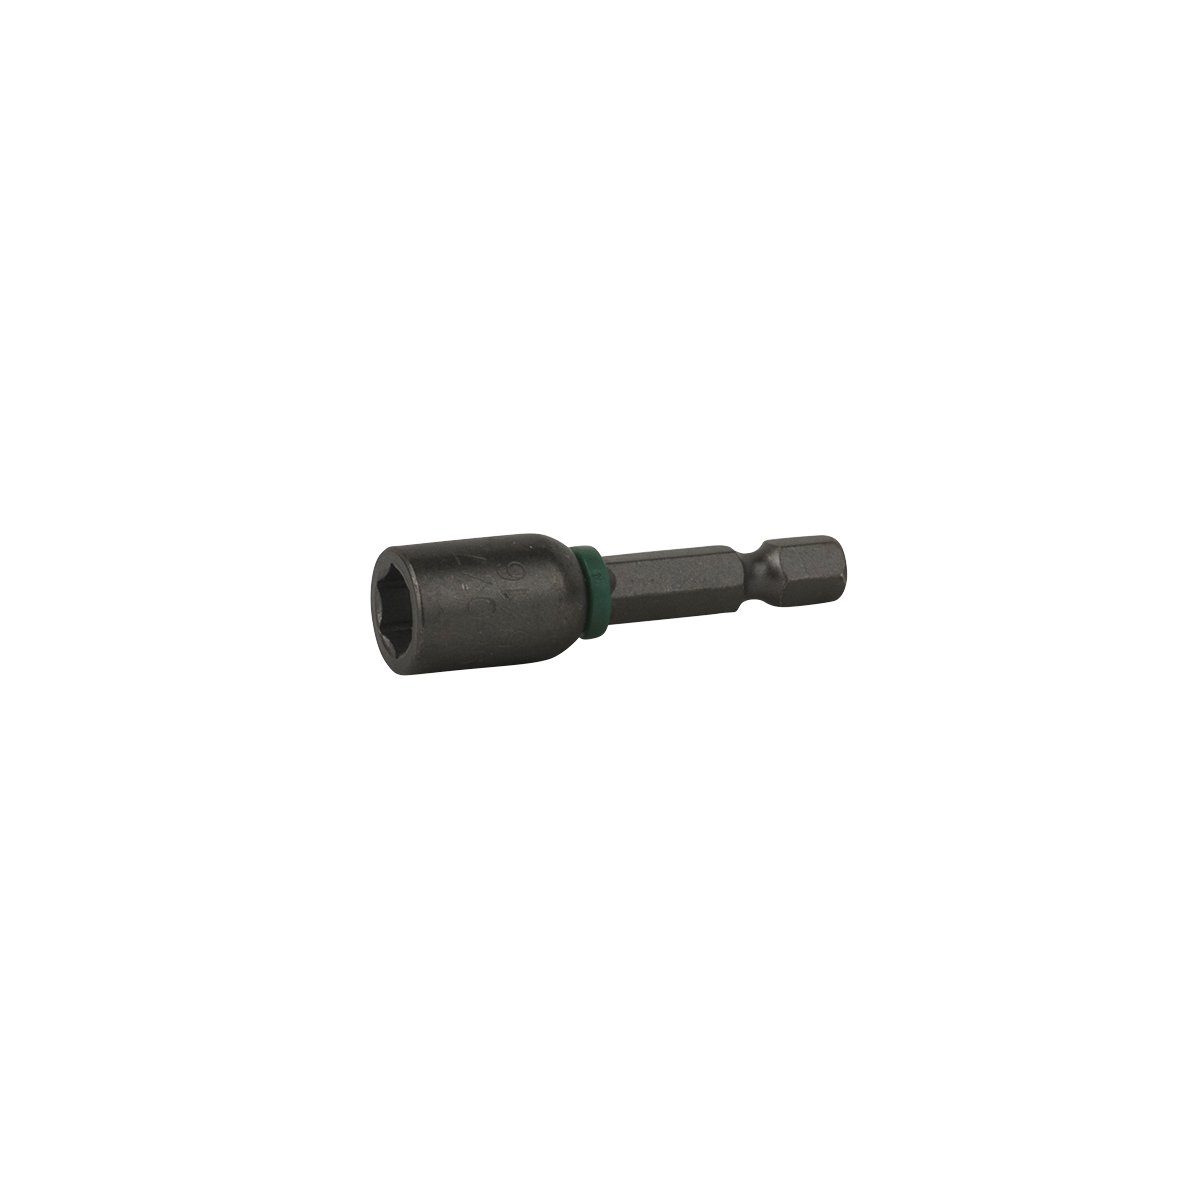 Recyclable, EAB Tool 98077 2 x 5//16 Impact Nutsetter Industrial Nut Driver